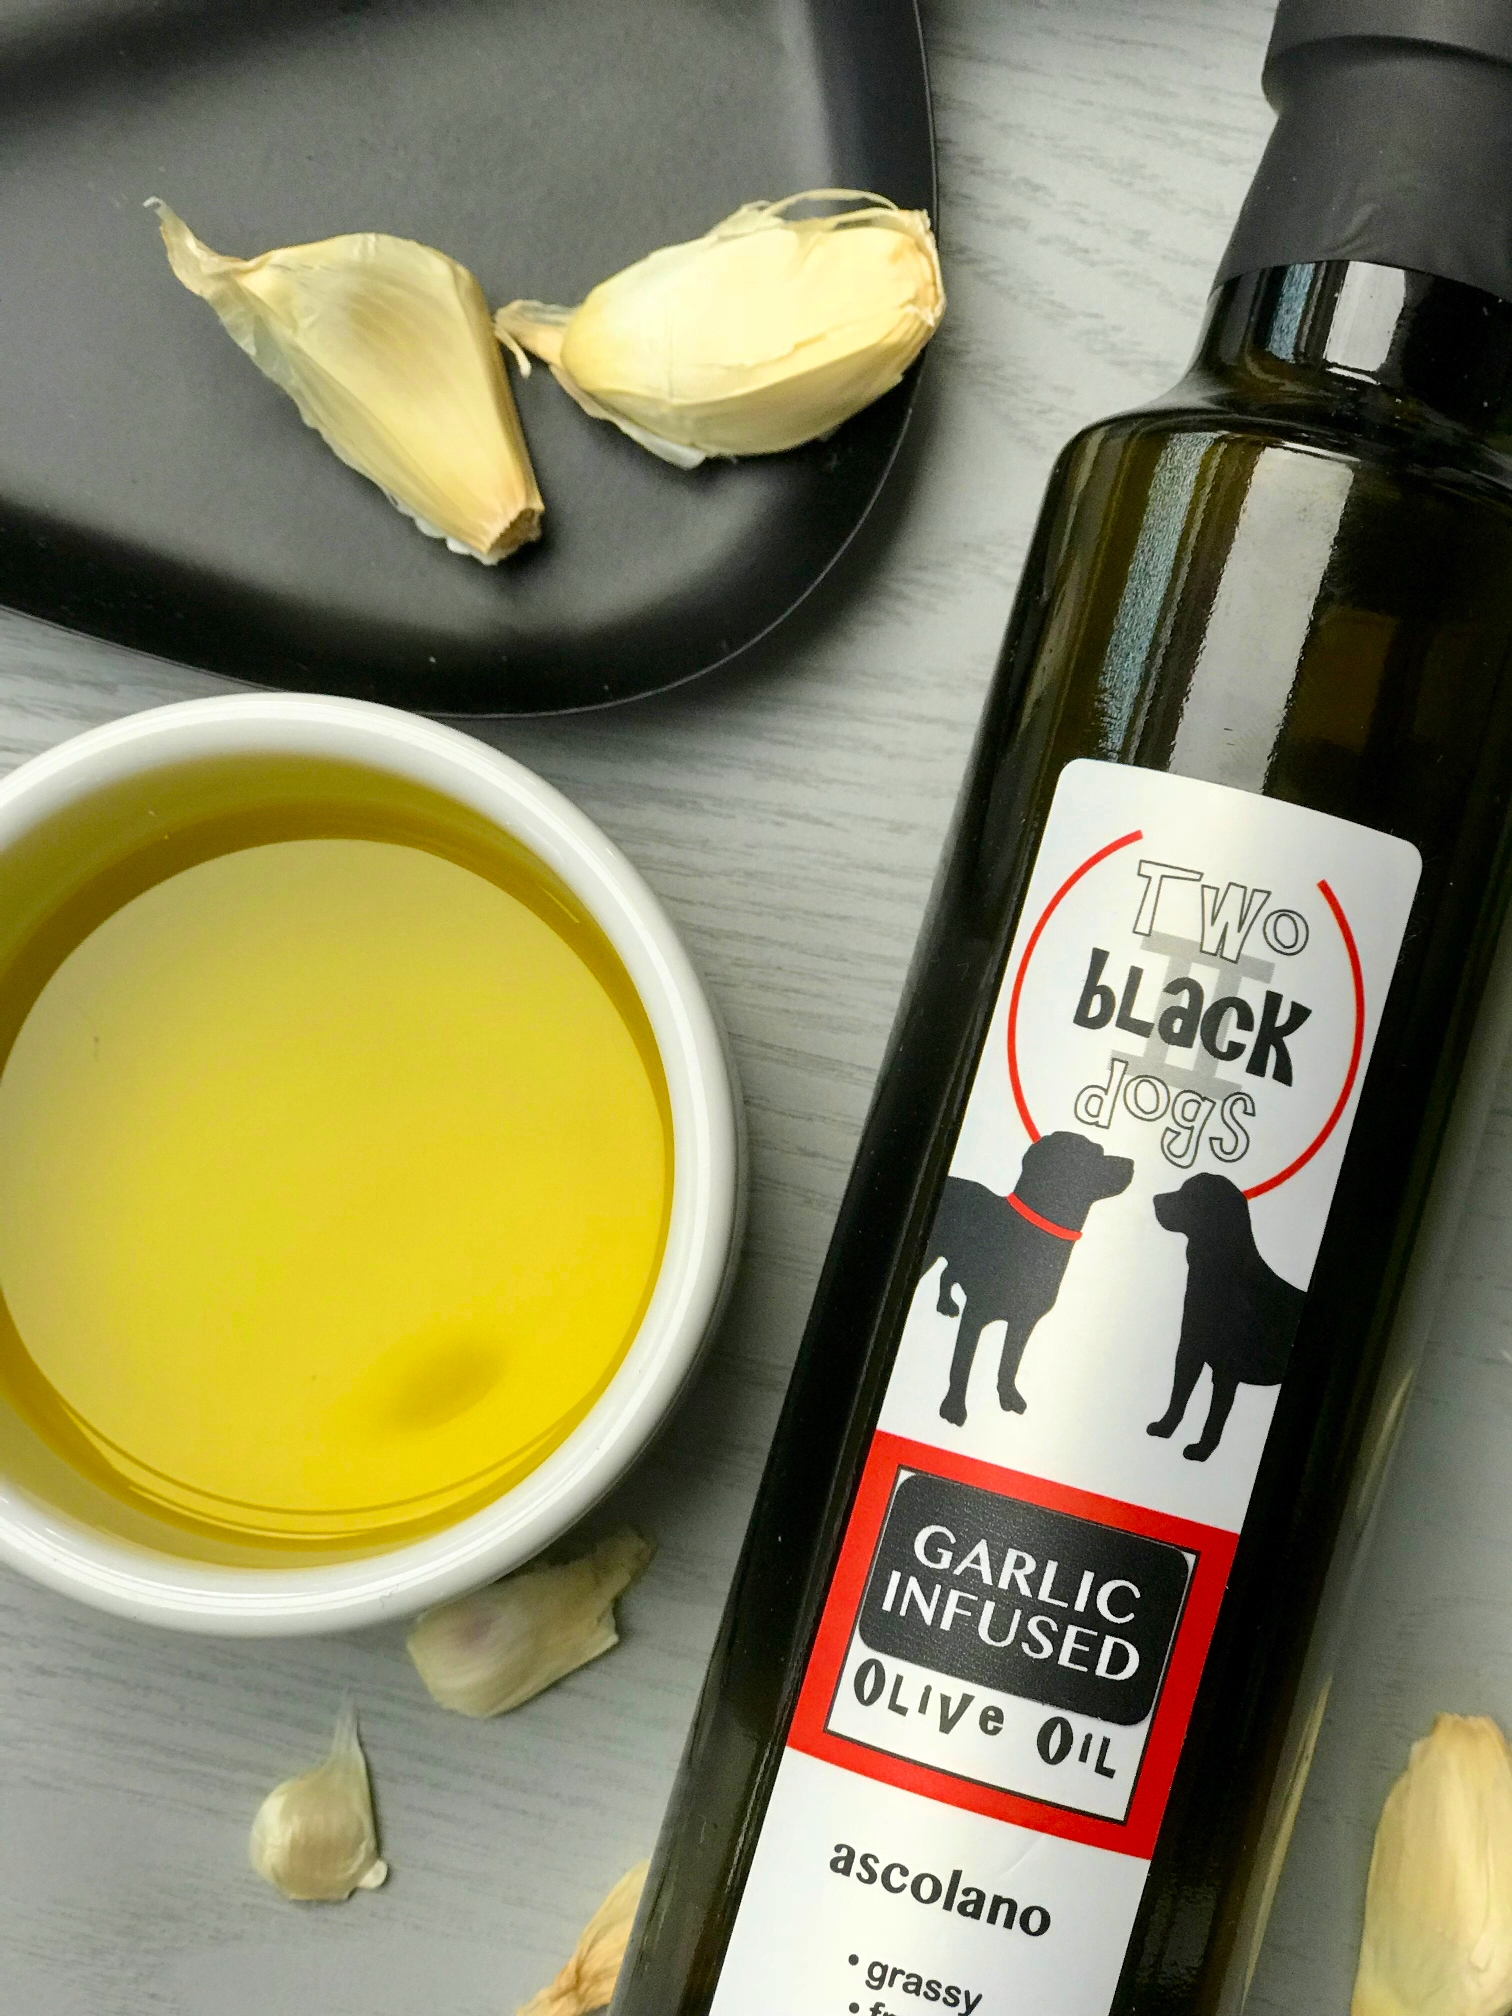 Two black dogs olive oil 2 p.jpeg